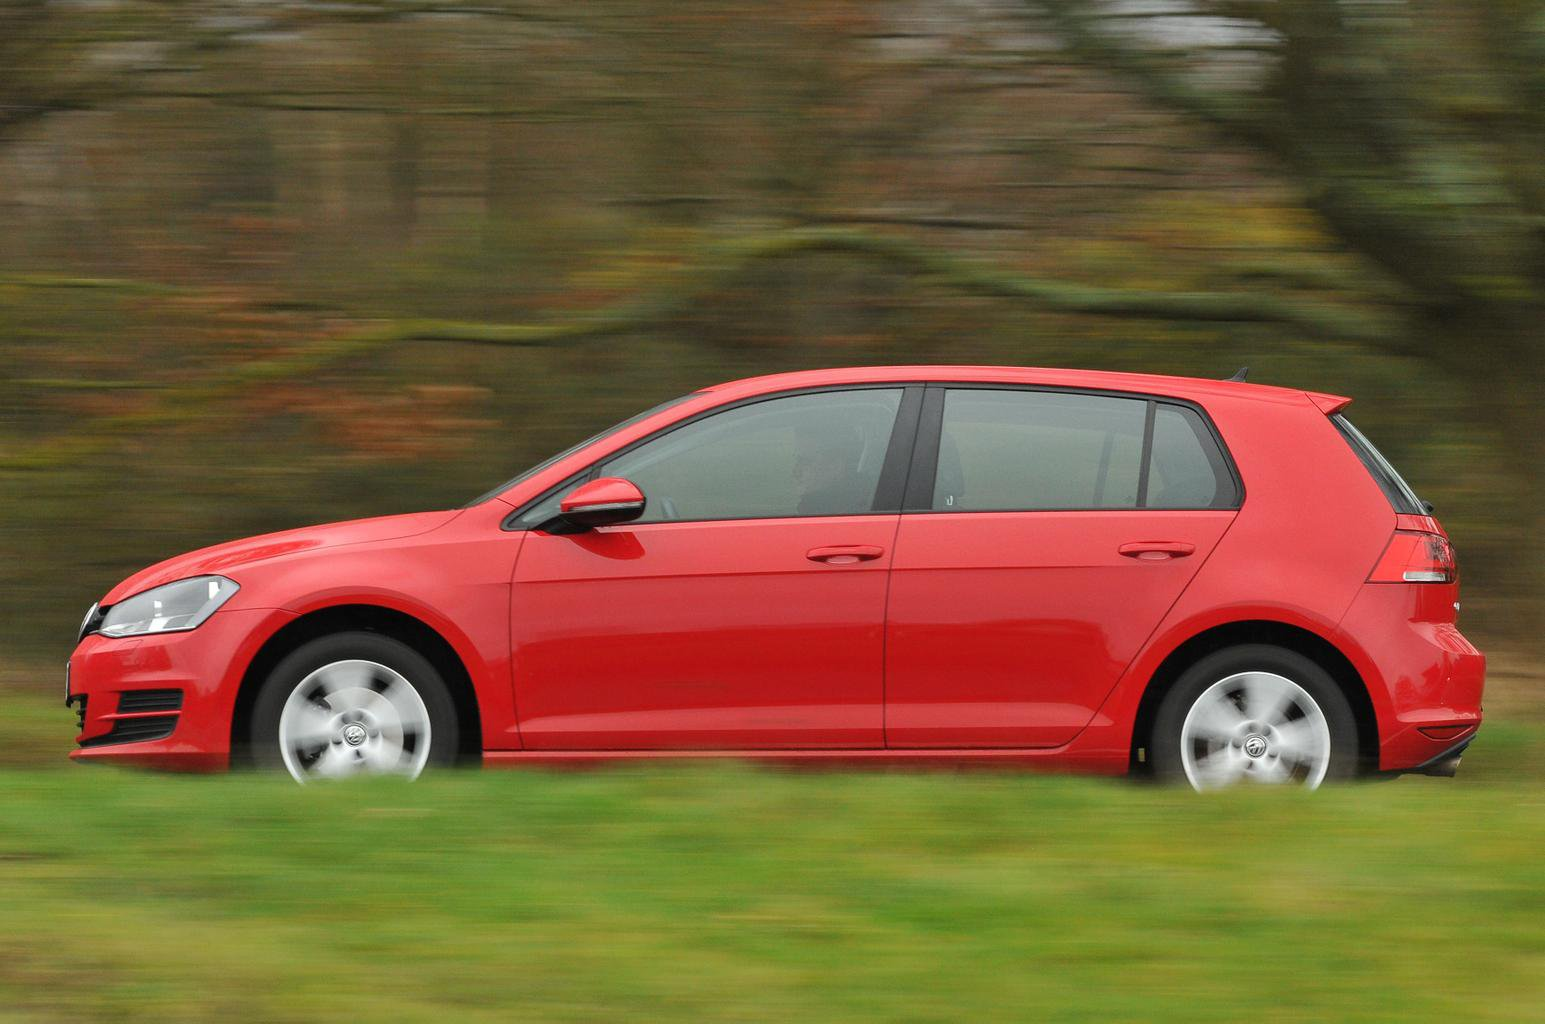 Top 10 used family cars for less than £10,000